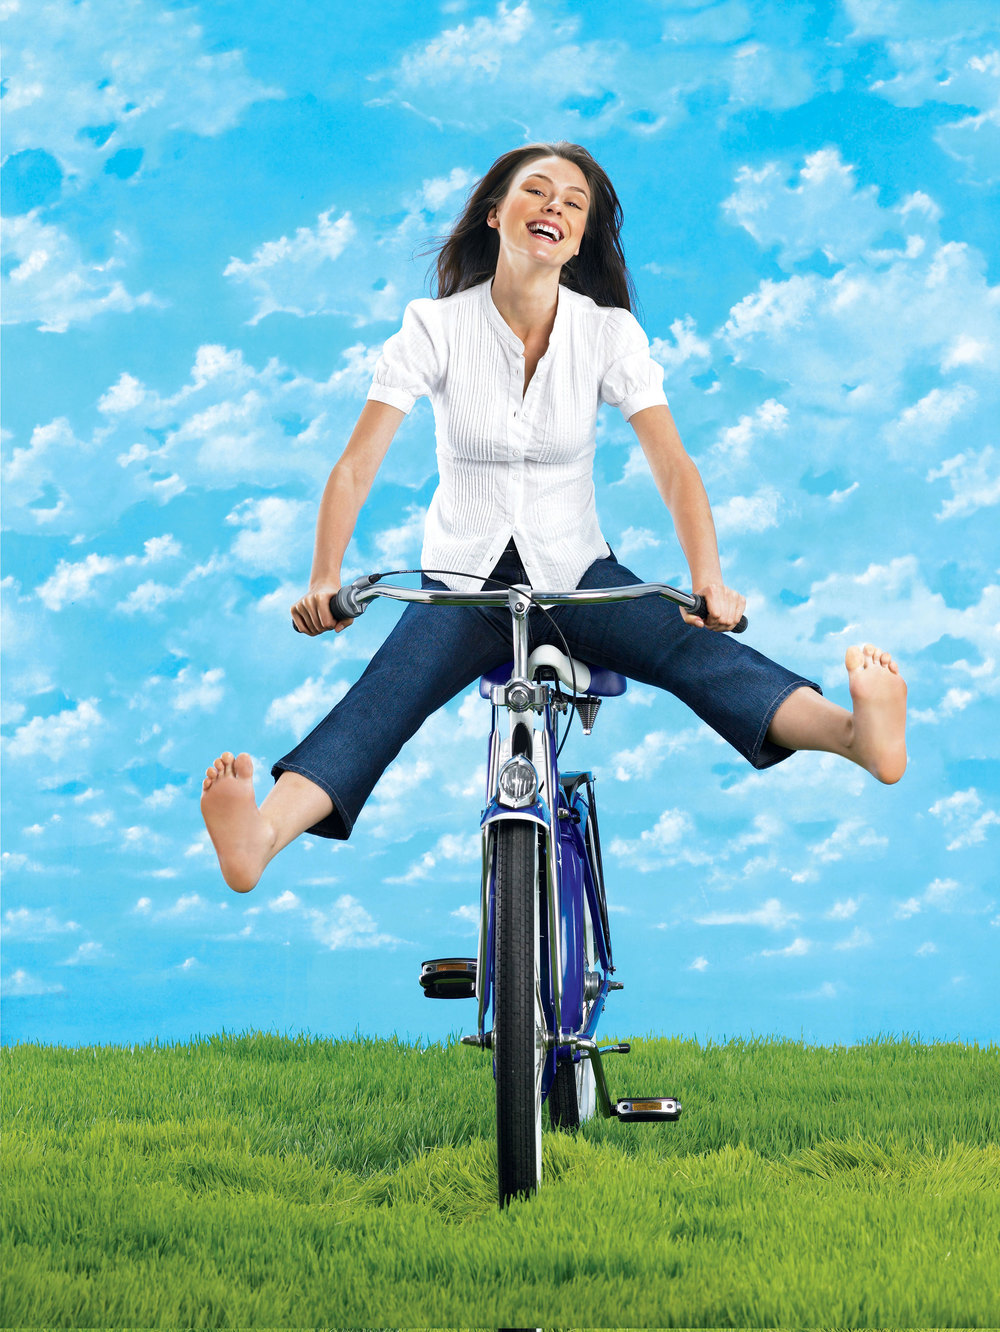 girl-on-bike.jpg